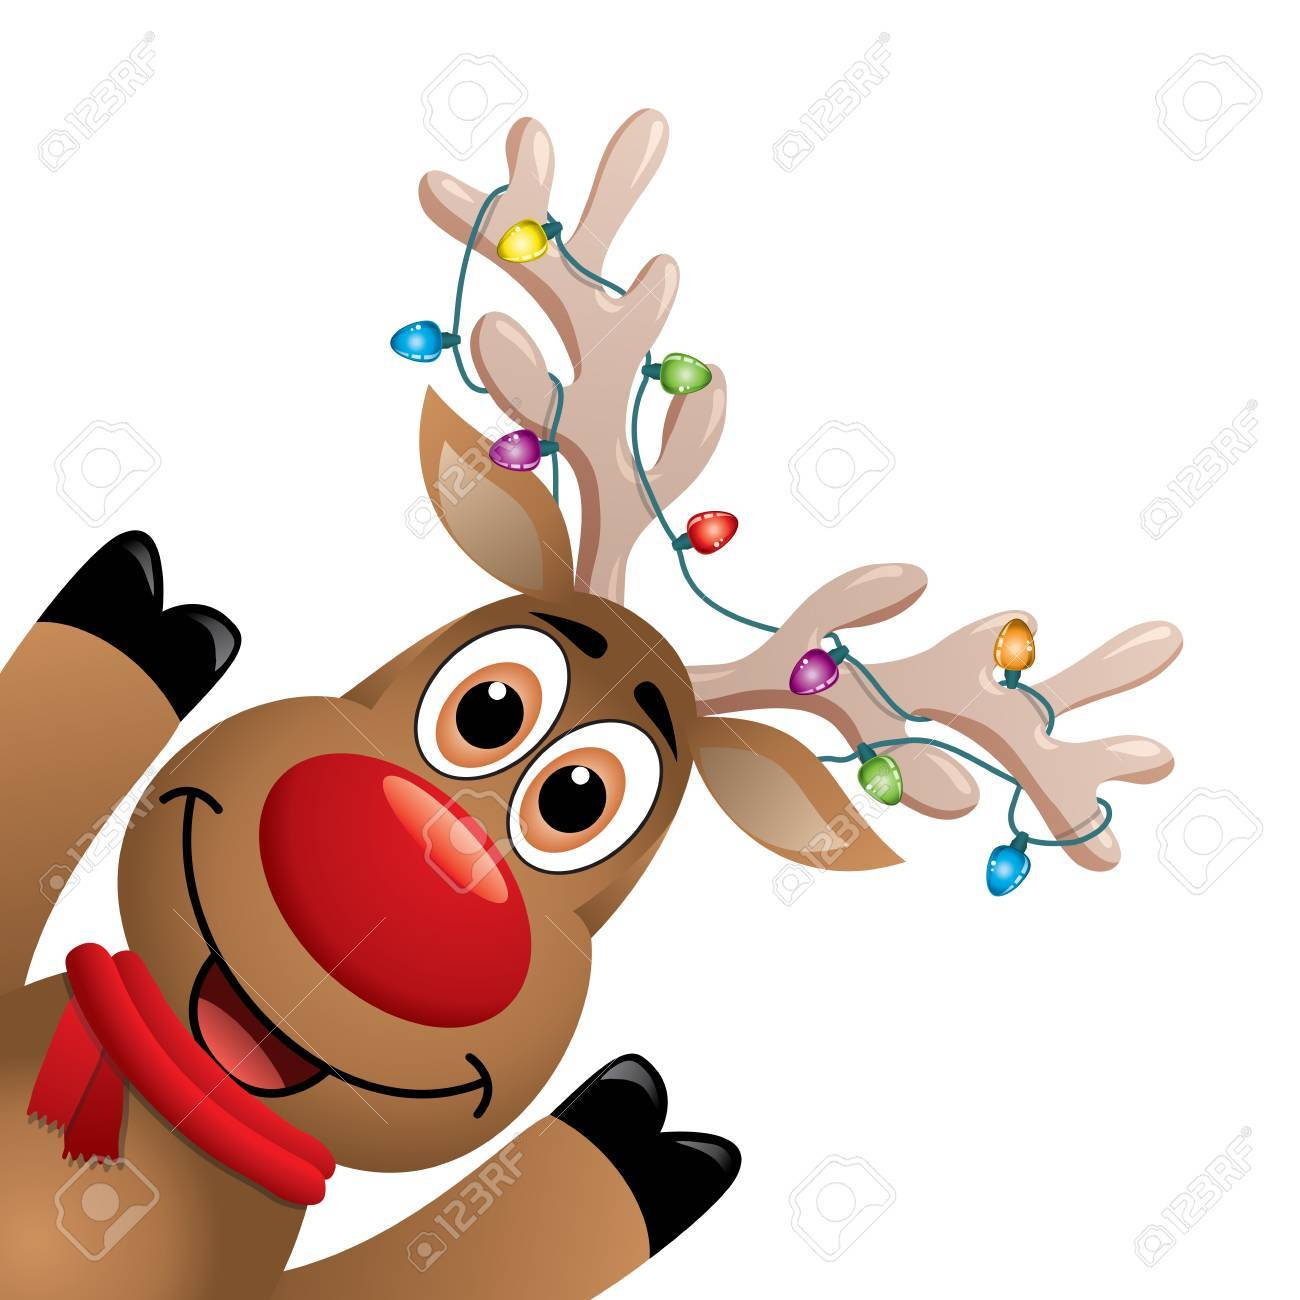 Christmas Lights Cartoon.Cartoon Rudolph Deer With Red Scarf And Christmas Lights On Big